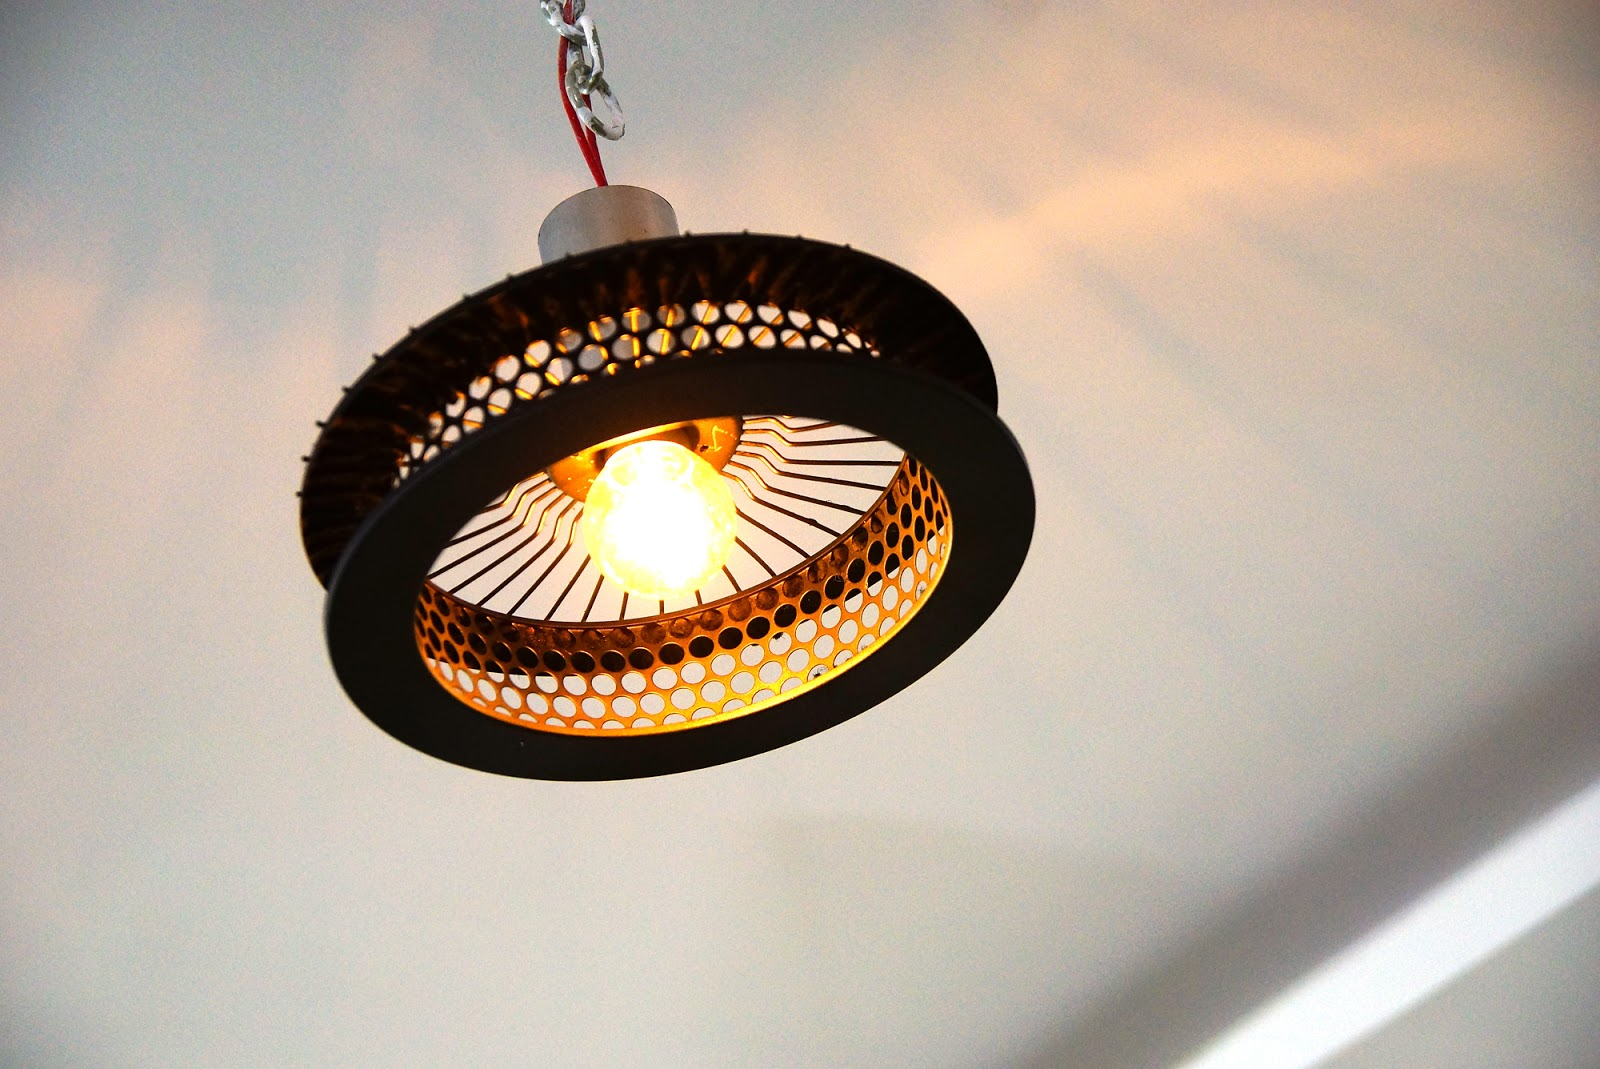 aziz siddiqui diy ceiling light from car air filter